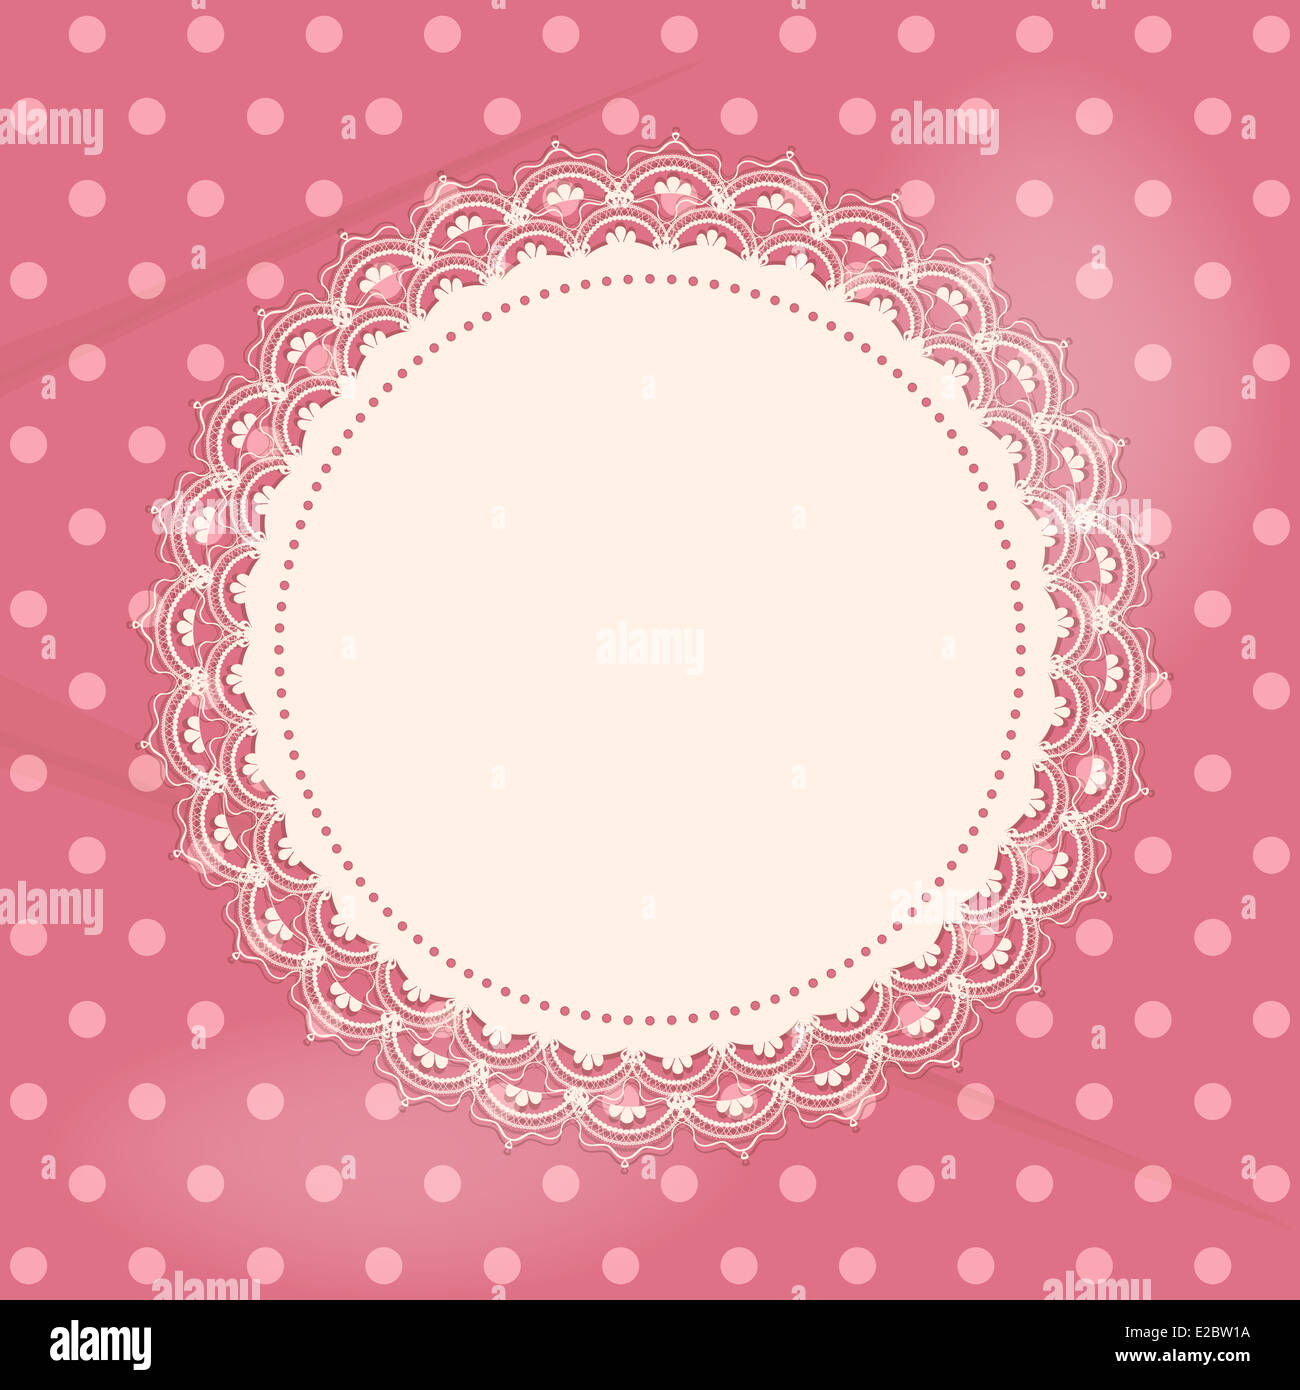 Lace doily border on a pink polka dot background stock photo lace doily border on a pink polka dot background voltagebd Choice Image